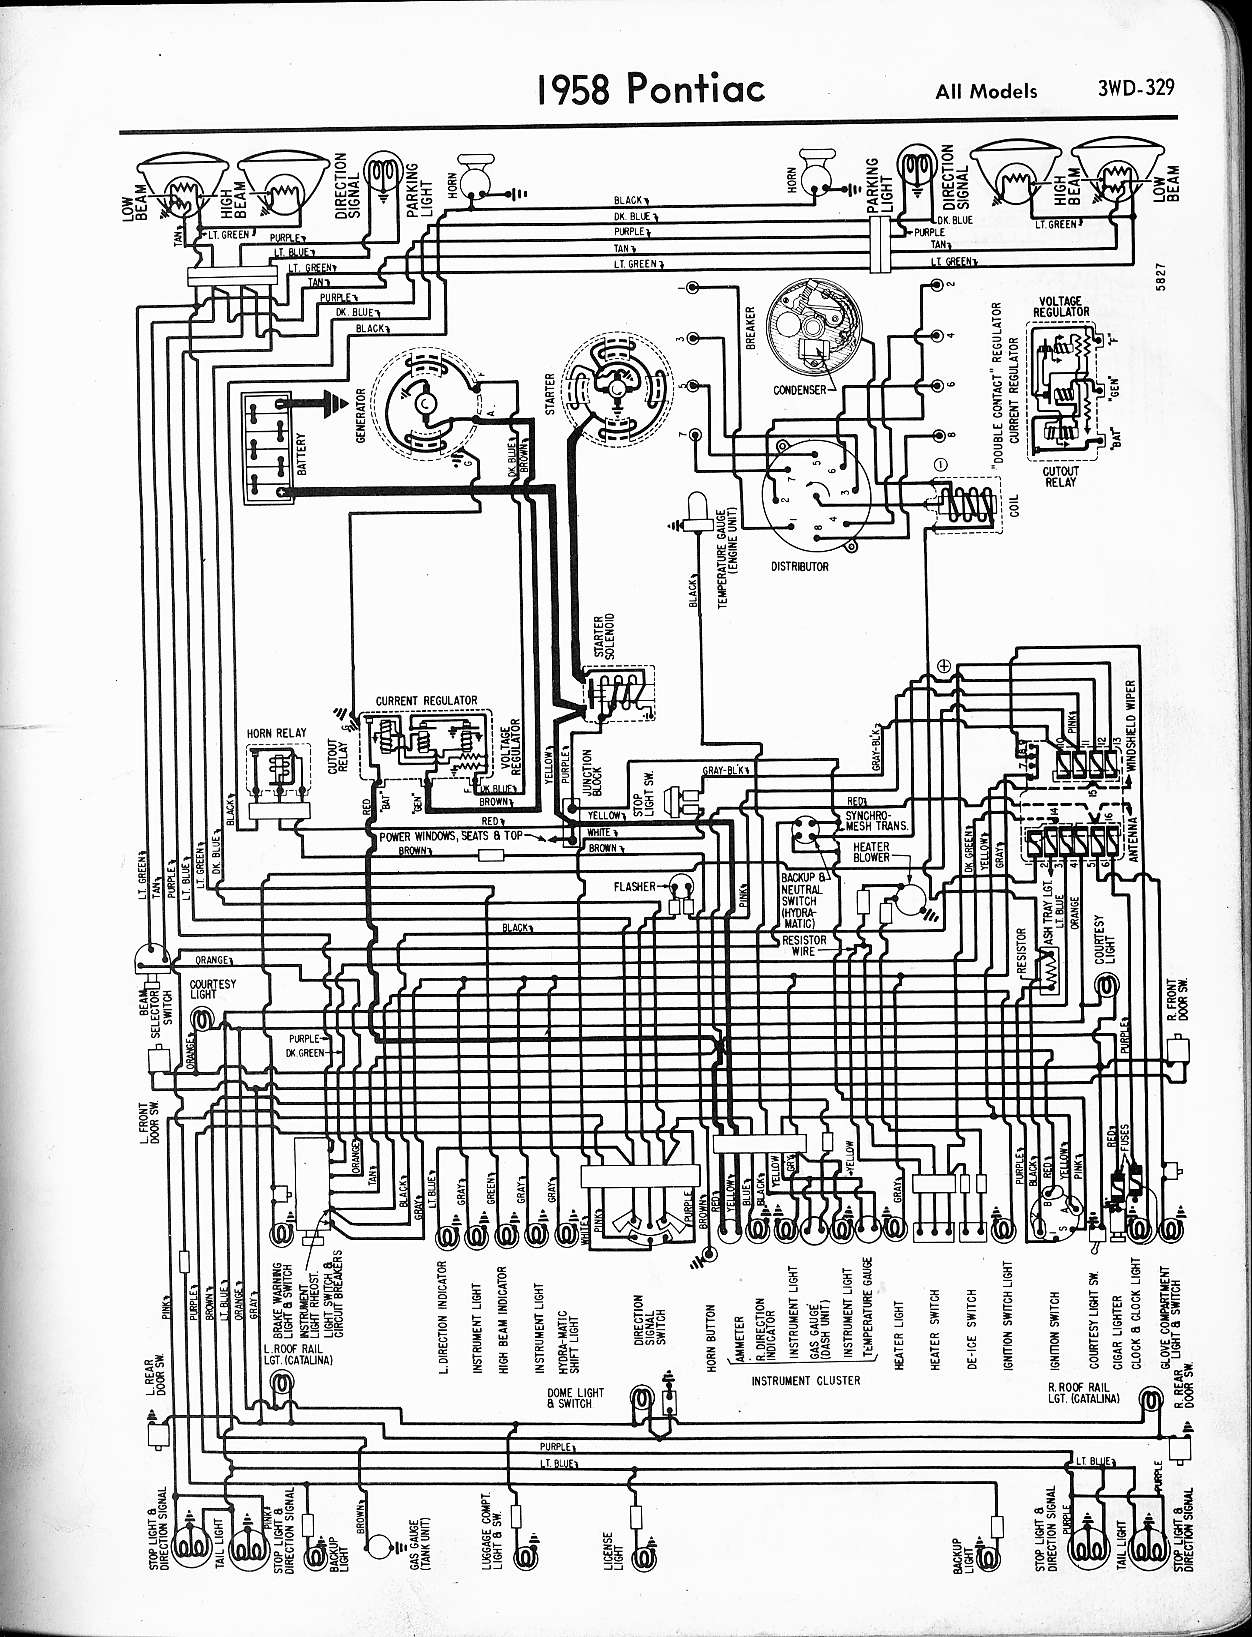 1963 Pontiac Wiring Diagram The Portal And Forum Of 1964 Avanti Wallace Racing Diagrams Rh Wallaceracing Com Grand Prix 1971 Firebird